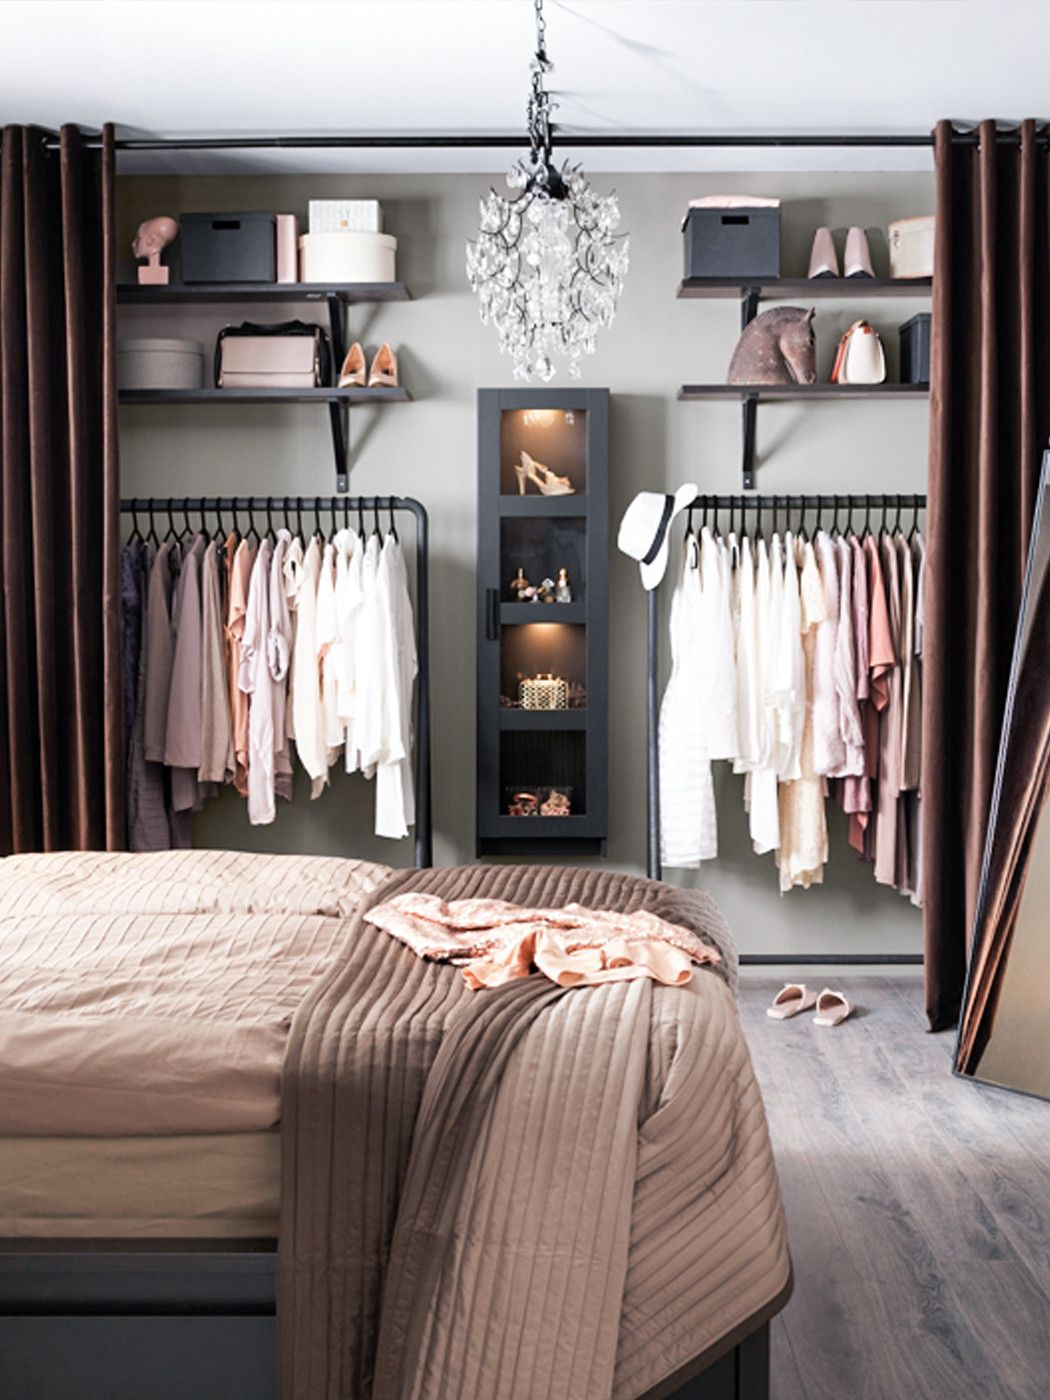 Schlafzimmer Schrank Vorhang 5 Pro Tips To Know Before You Start Organizing Indgang